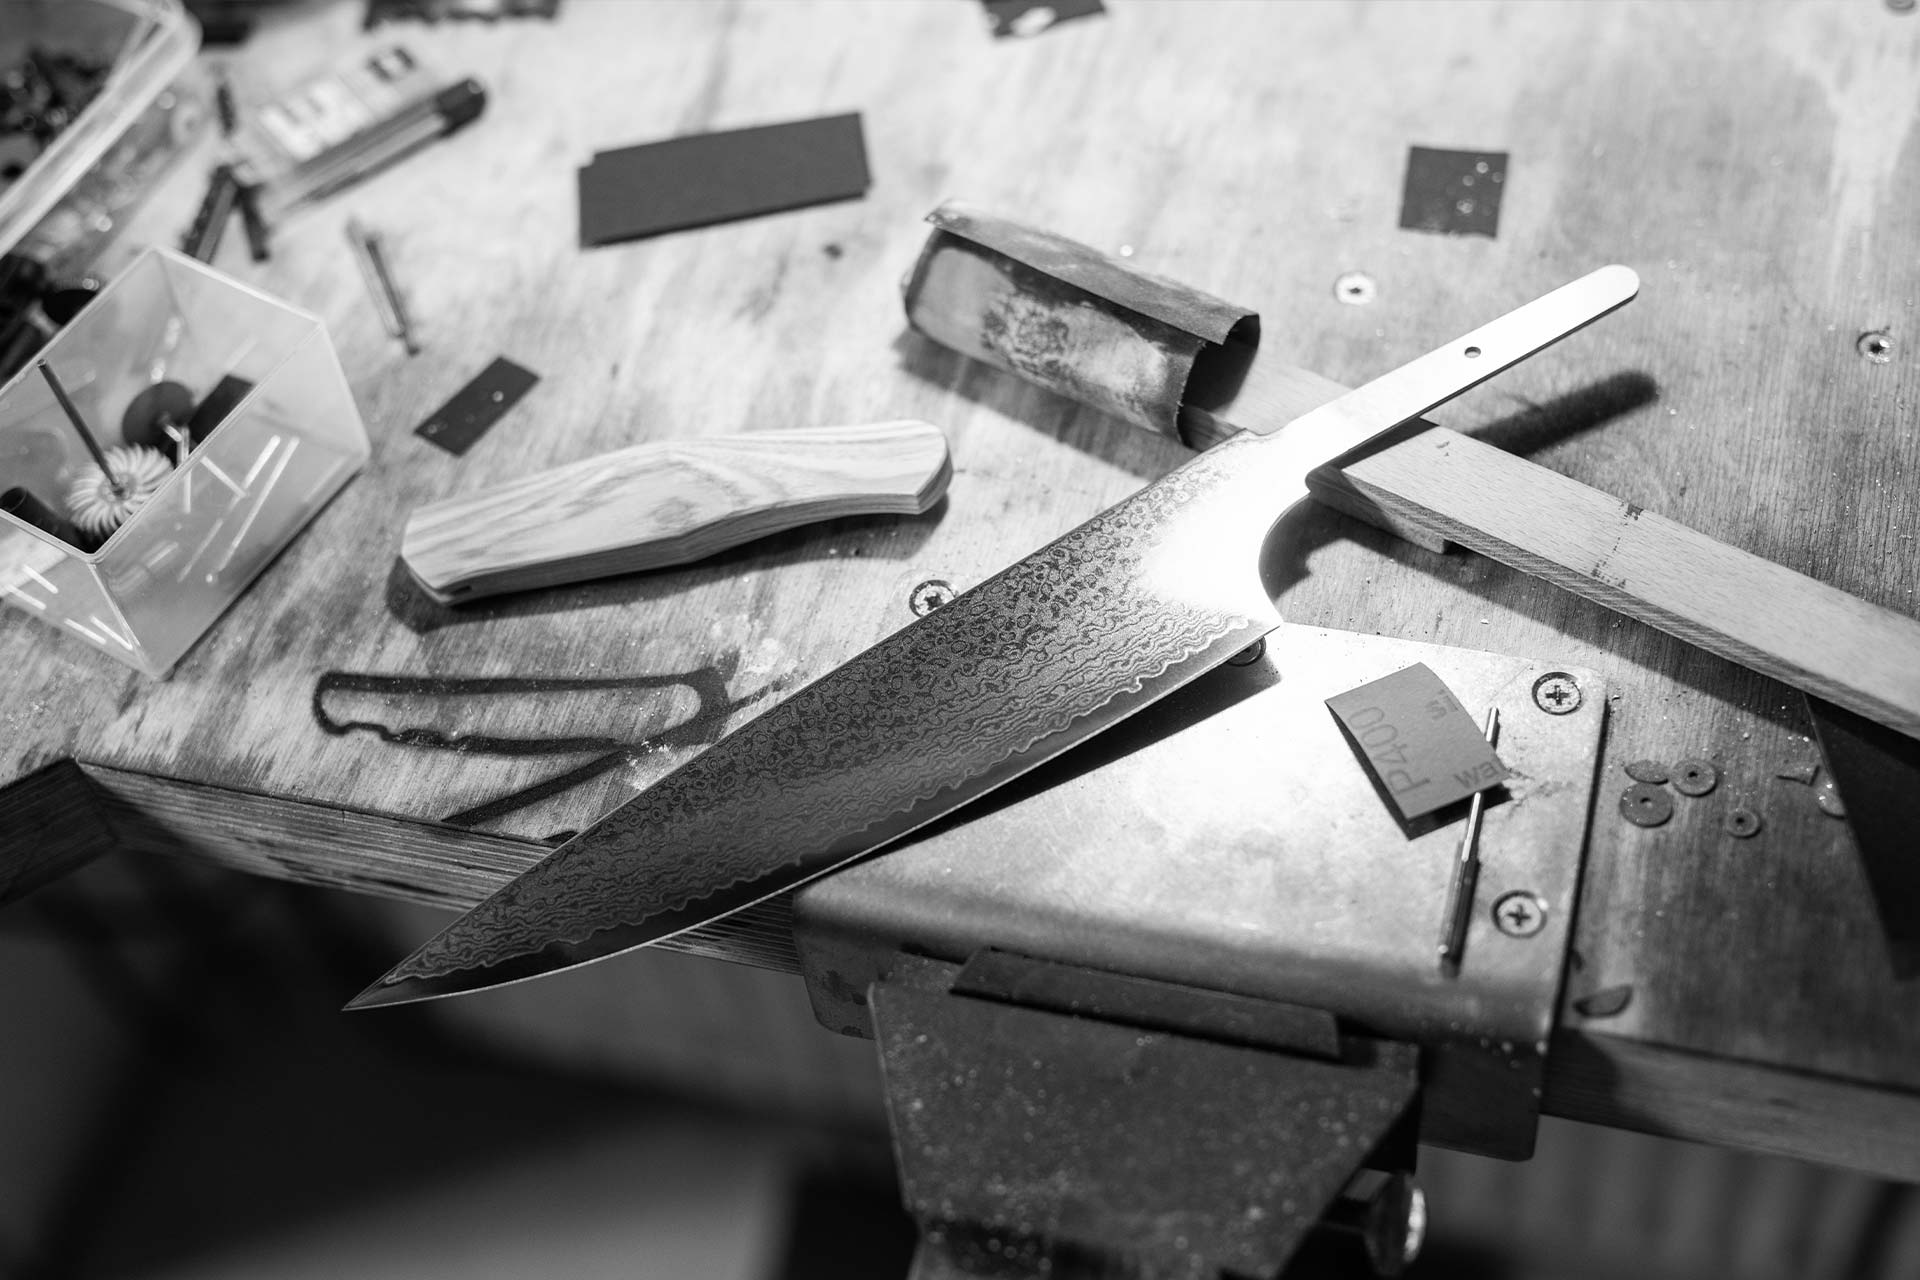 Handcrafted kitchen knife on work table